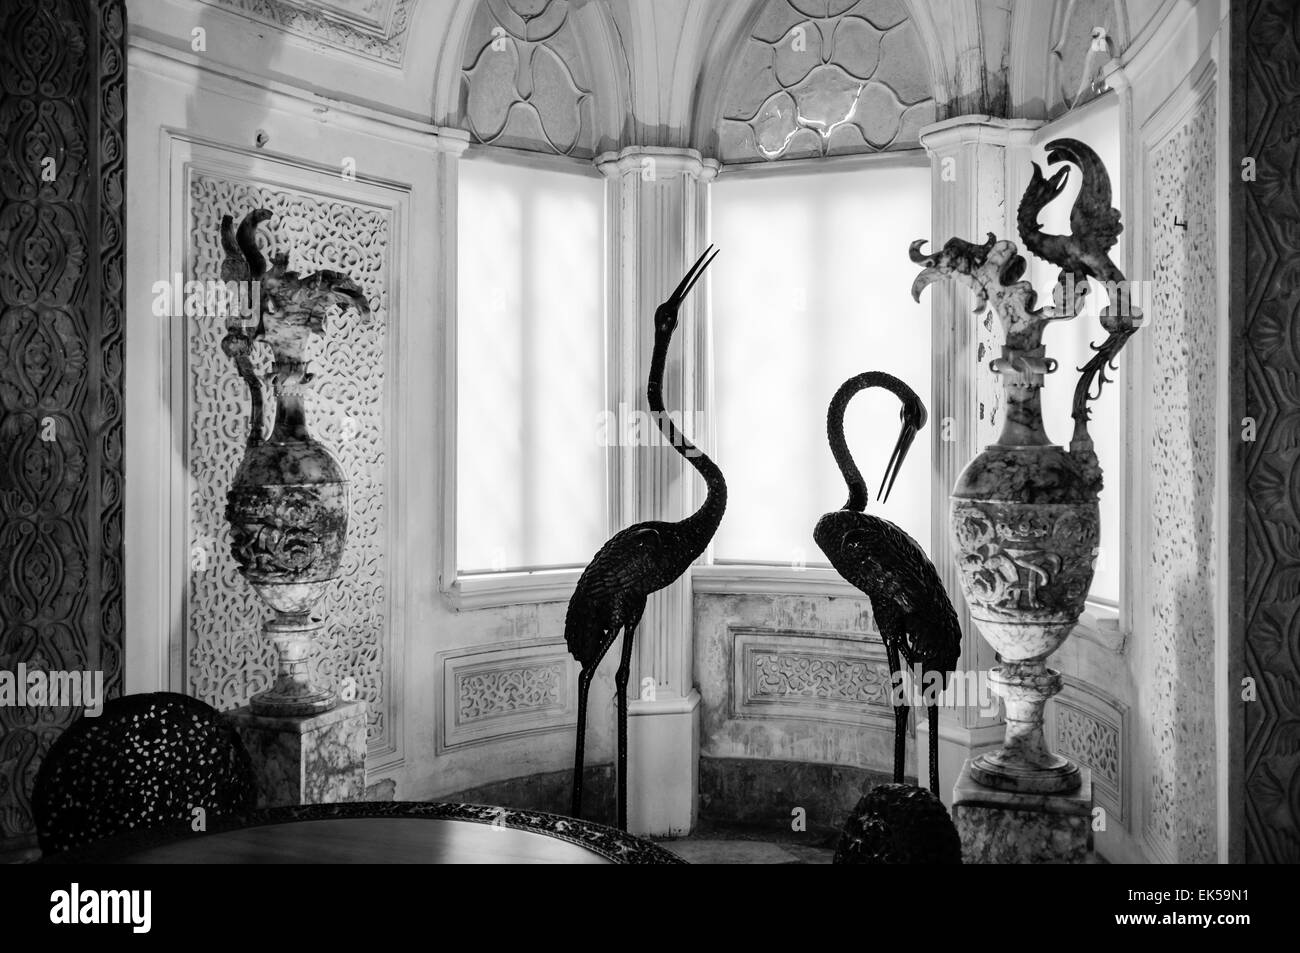 Portugal, Sintra, Pena National Palace (Palàcio Nacional da Pena), 18th century a. C., original sculptures - Stock Image